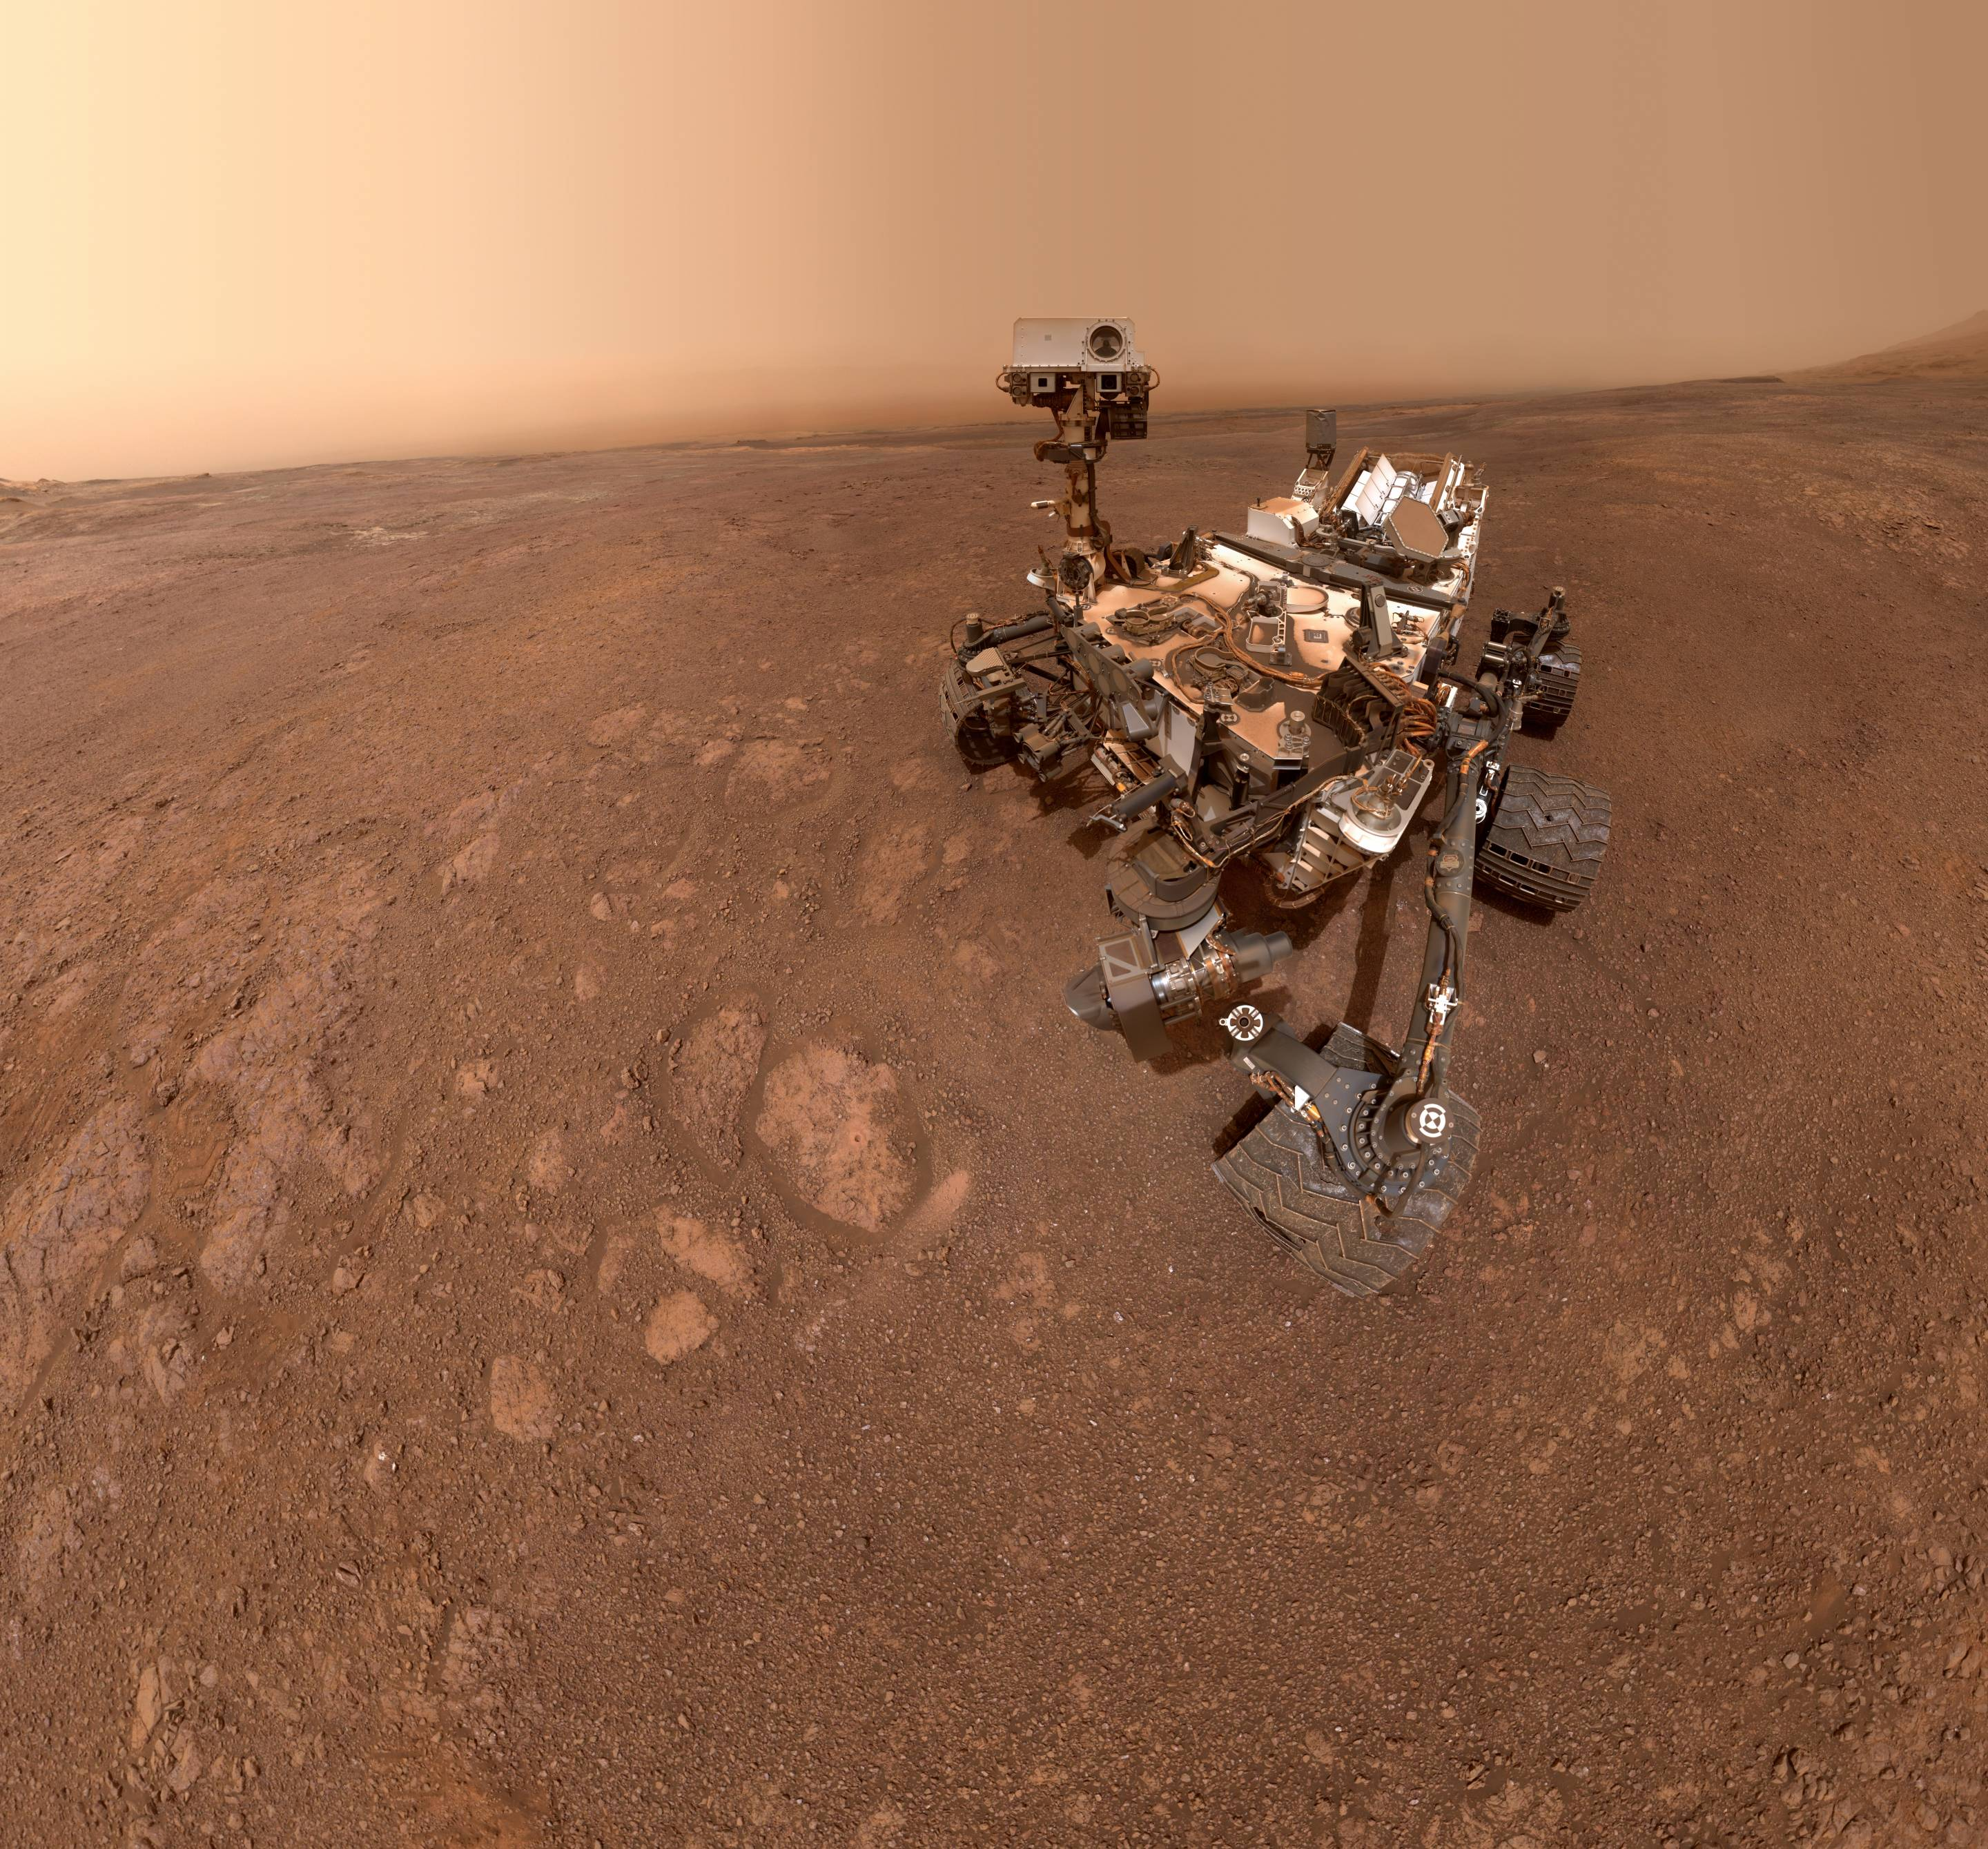 Mars Curiosity Rover poses for a selfie.